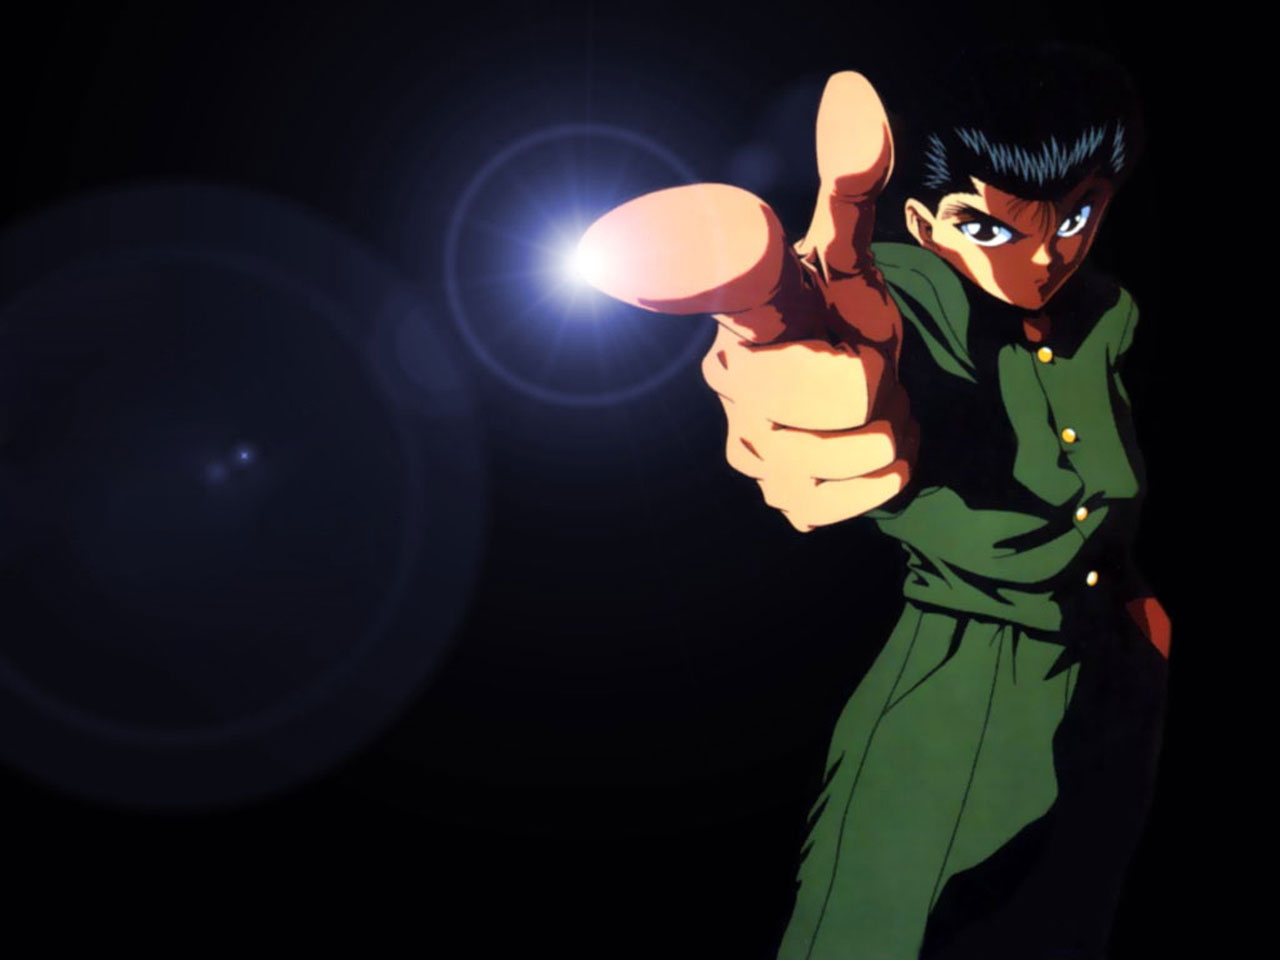 Yu Yu Hakusho Yusuke Demon Wallpaper Yu Yu Hakusho tells the story